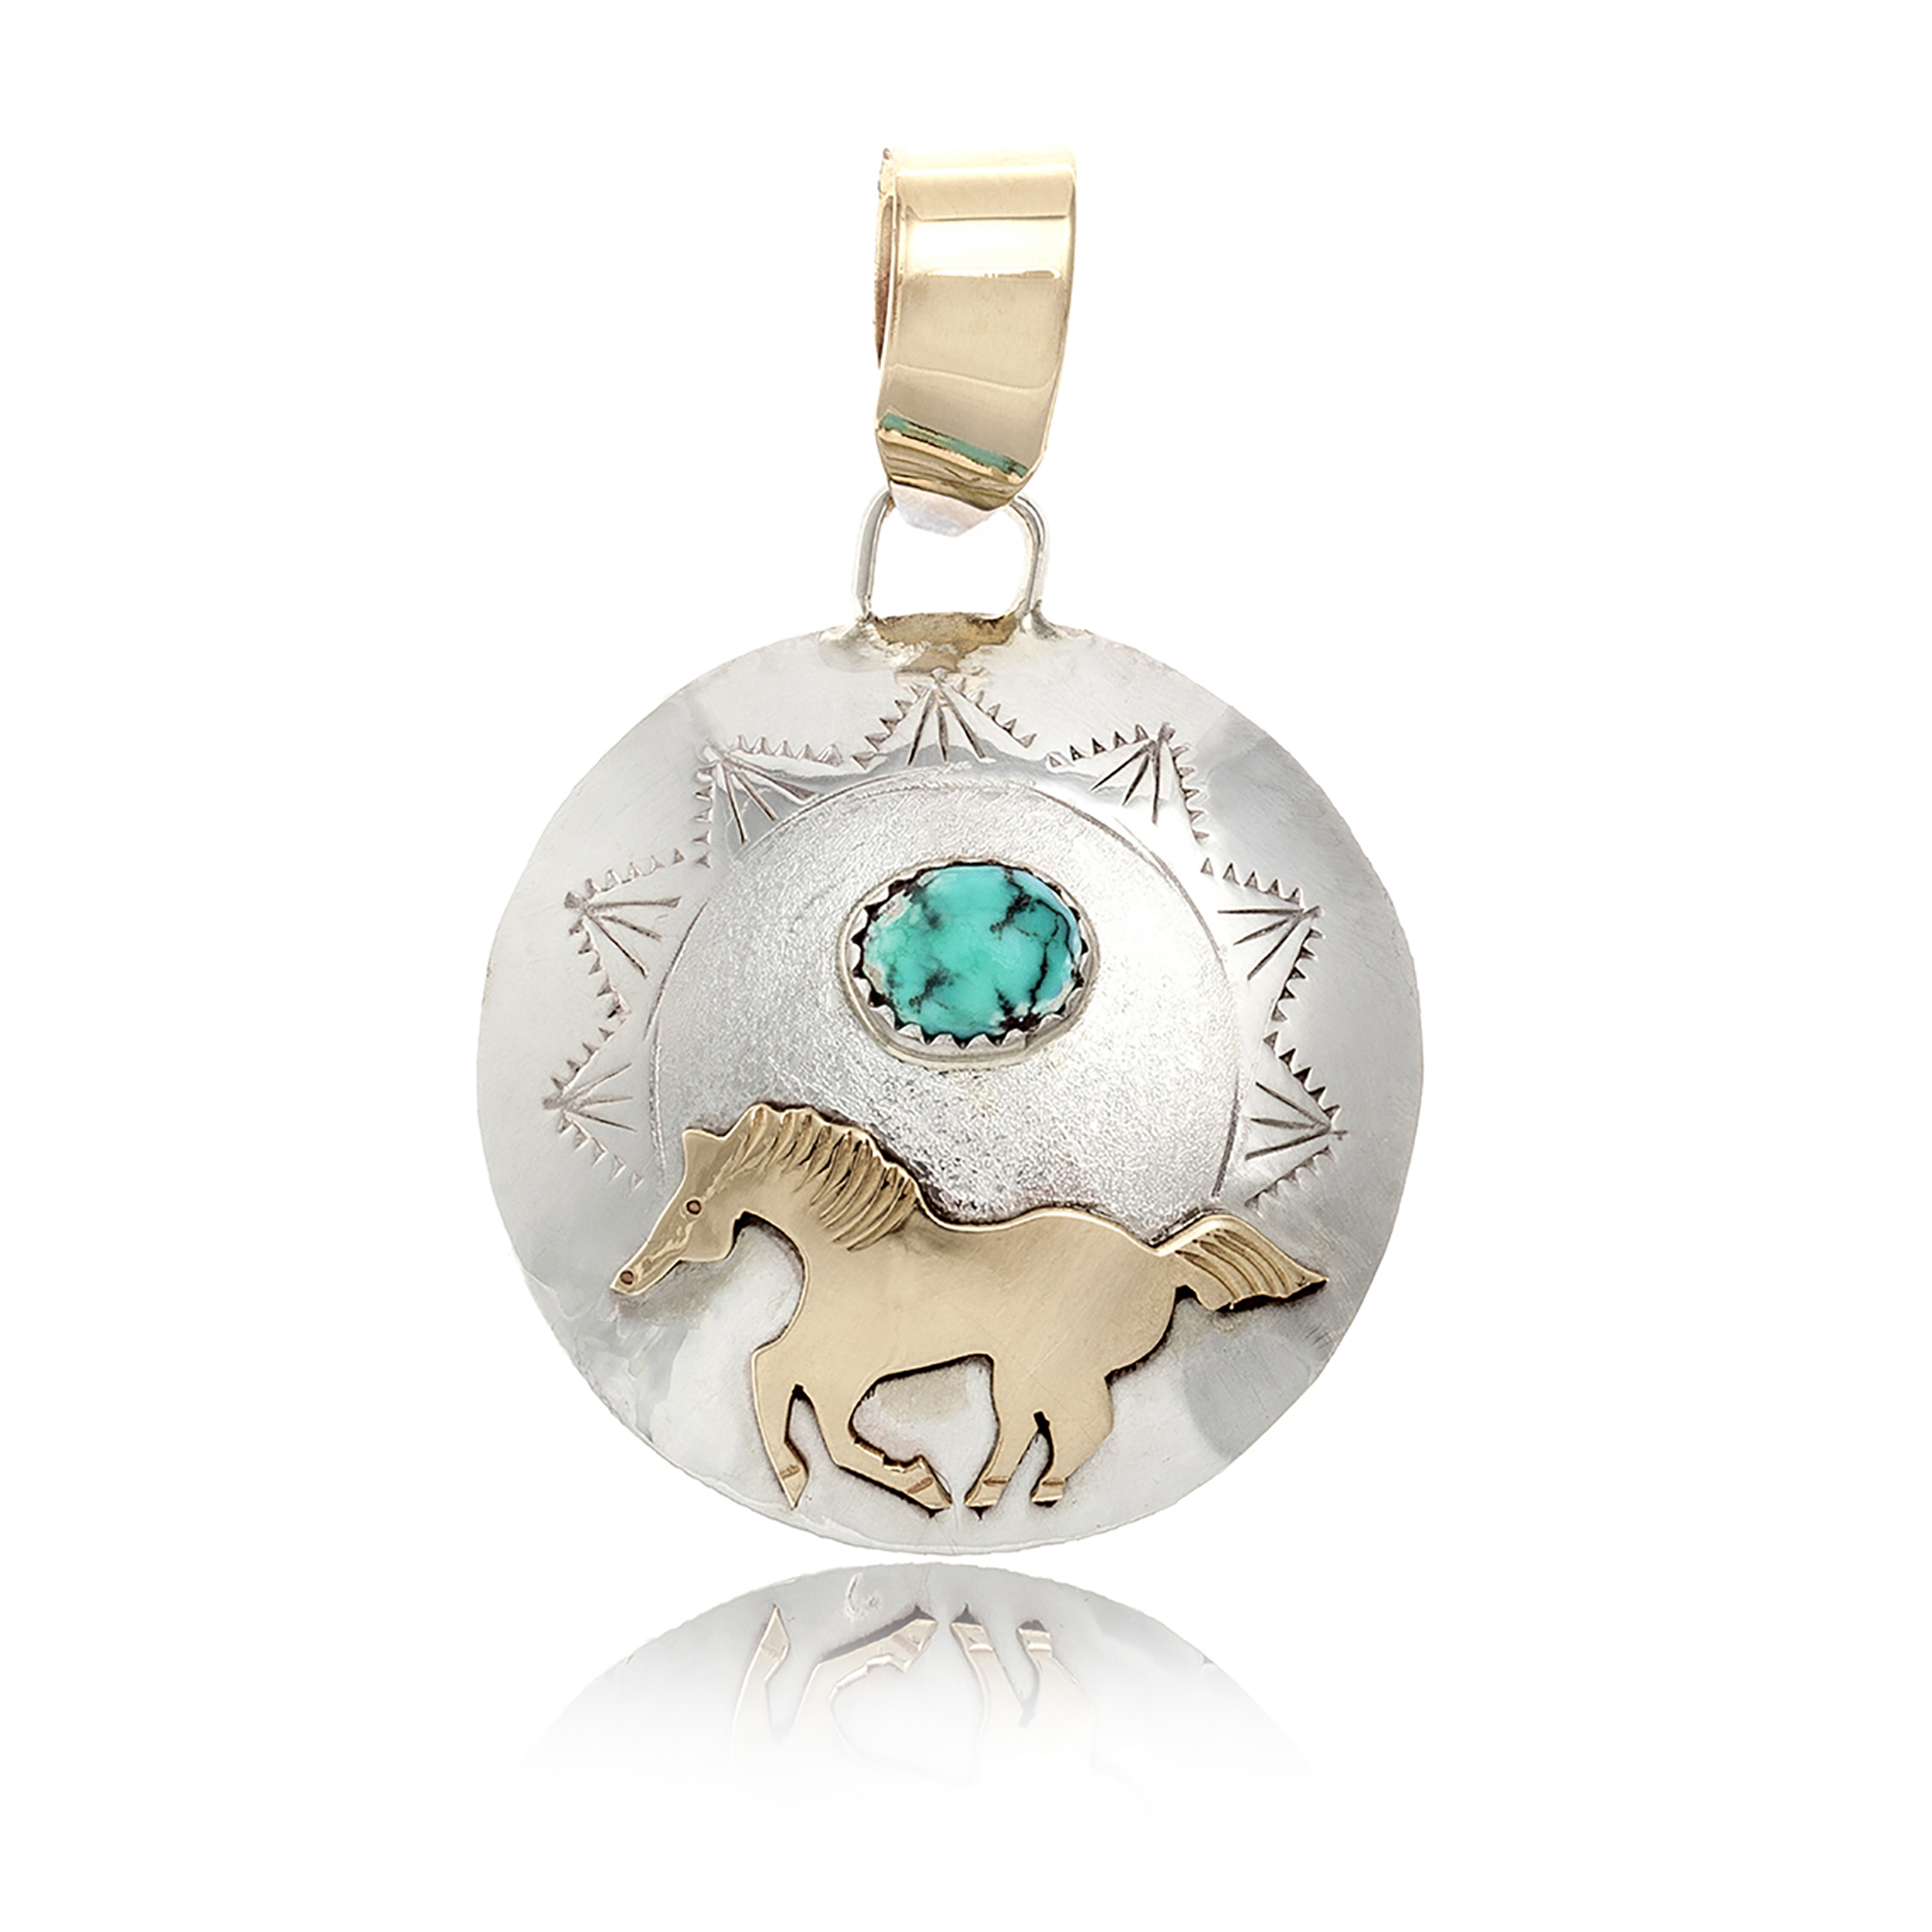 Horse 12kt Gold Filled and .925 Sterling Silver Certified Authentic Handmade Very Delicate Navajo Native American Natural Turquoise Pendant 24510-1 Pendants NB160422235607 24510-1 (by LomaSiiva)